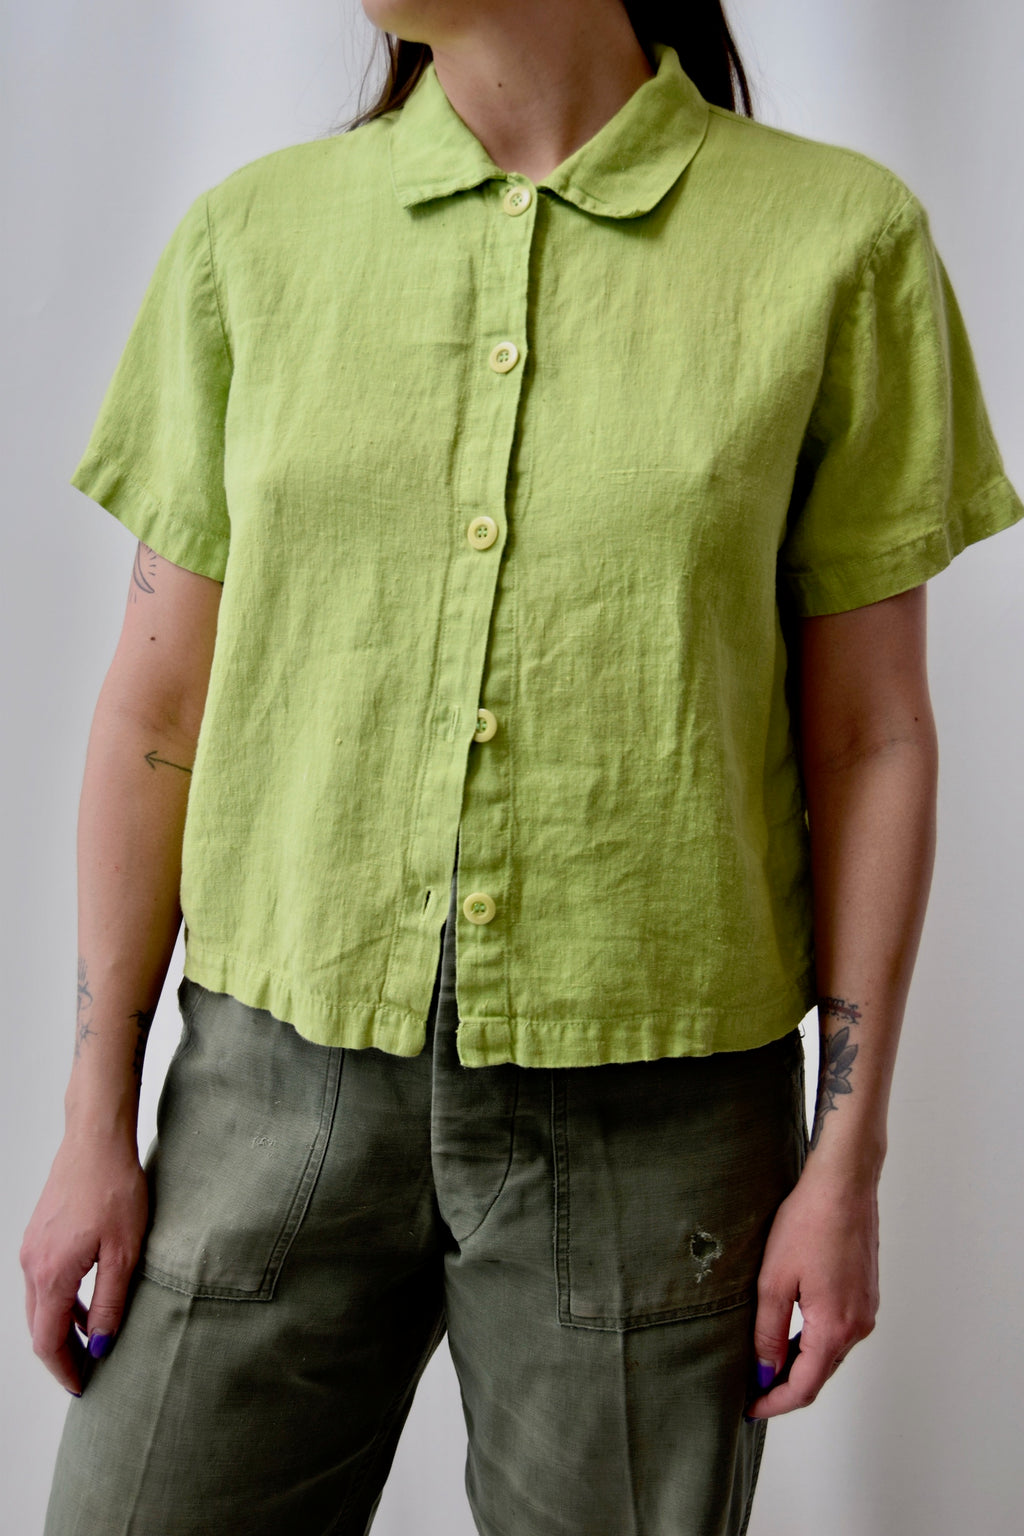 Citrus Linen Short Sleeve Top FREE SHIPPING TO THE U.S.